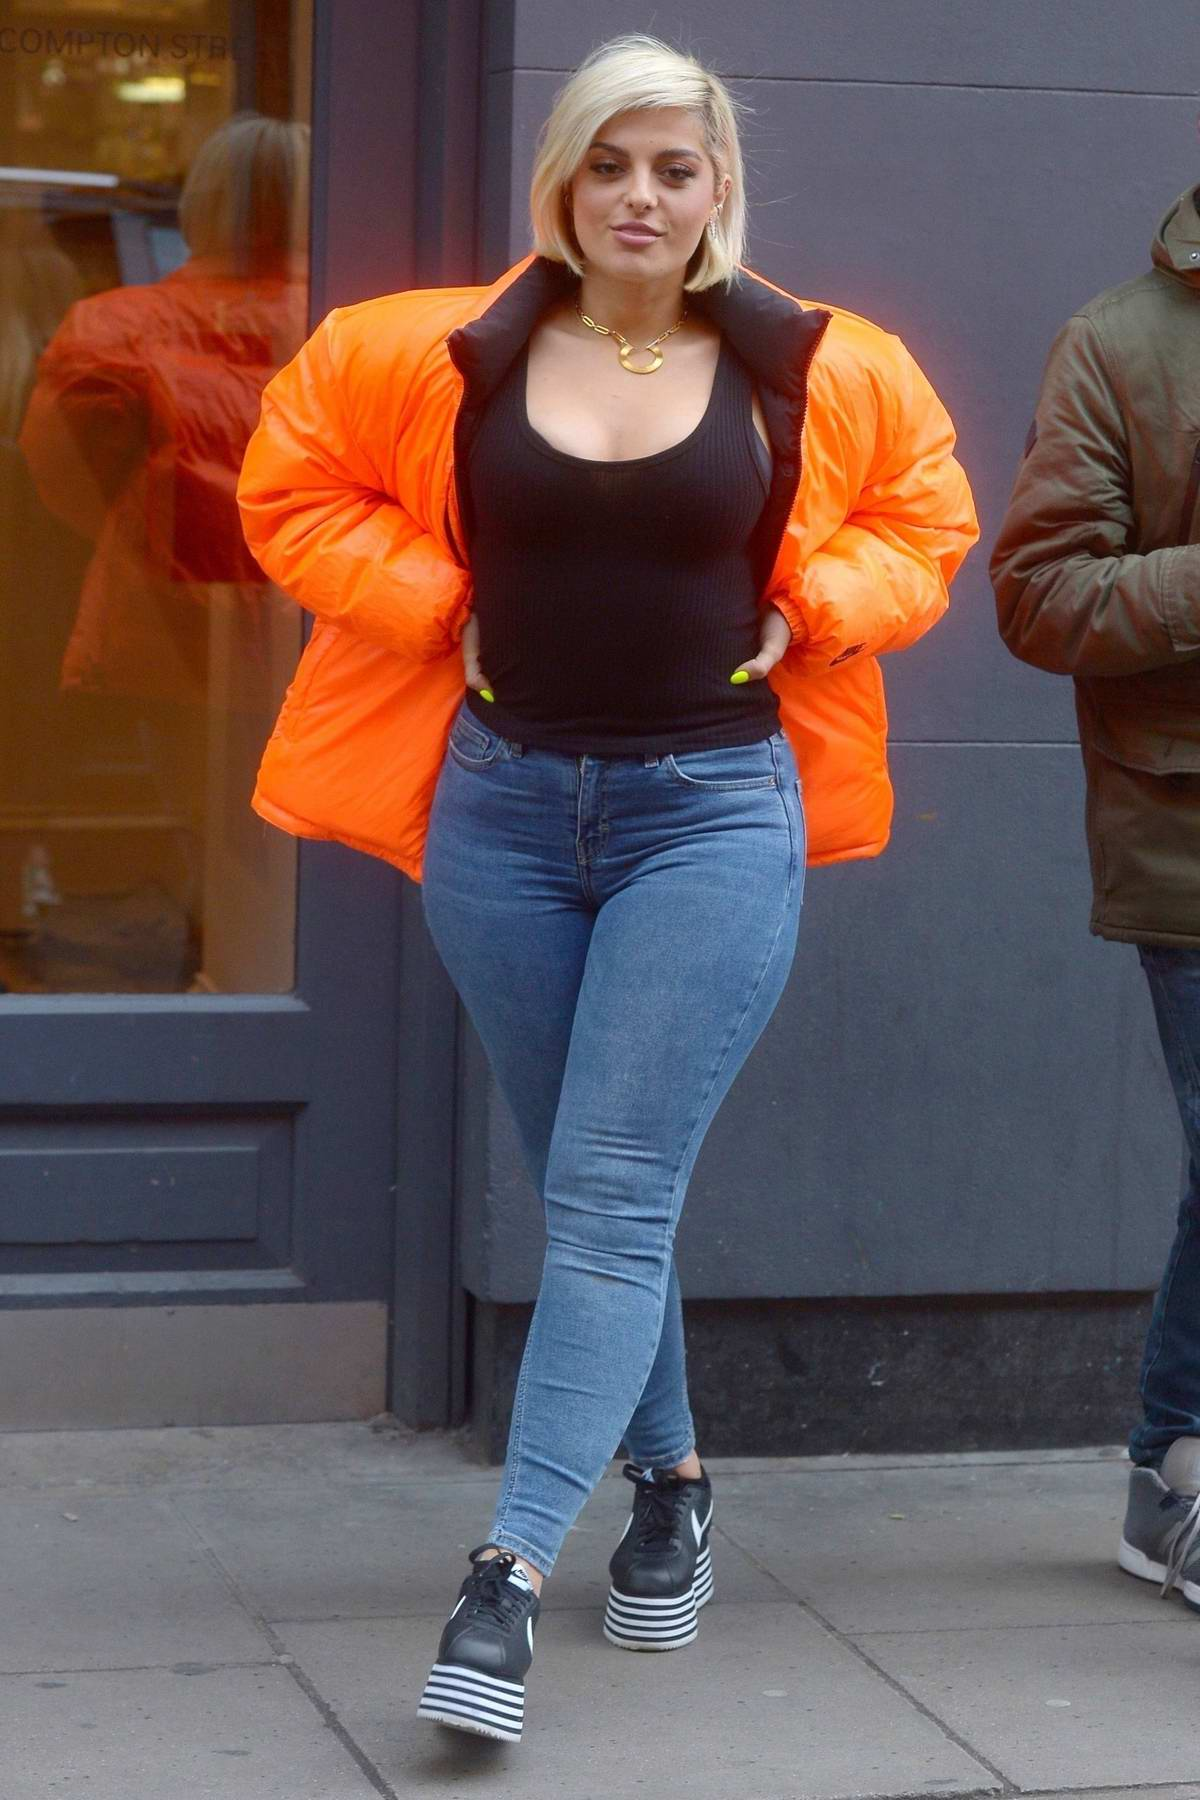 Bebe Rexha stands out in orange puffer jacket while out in